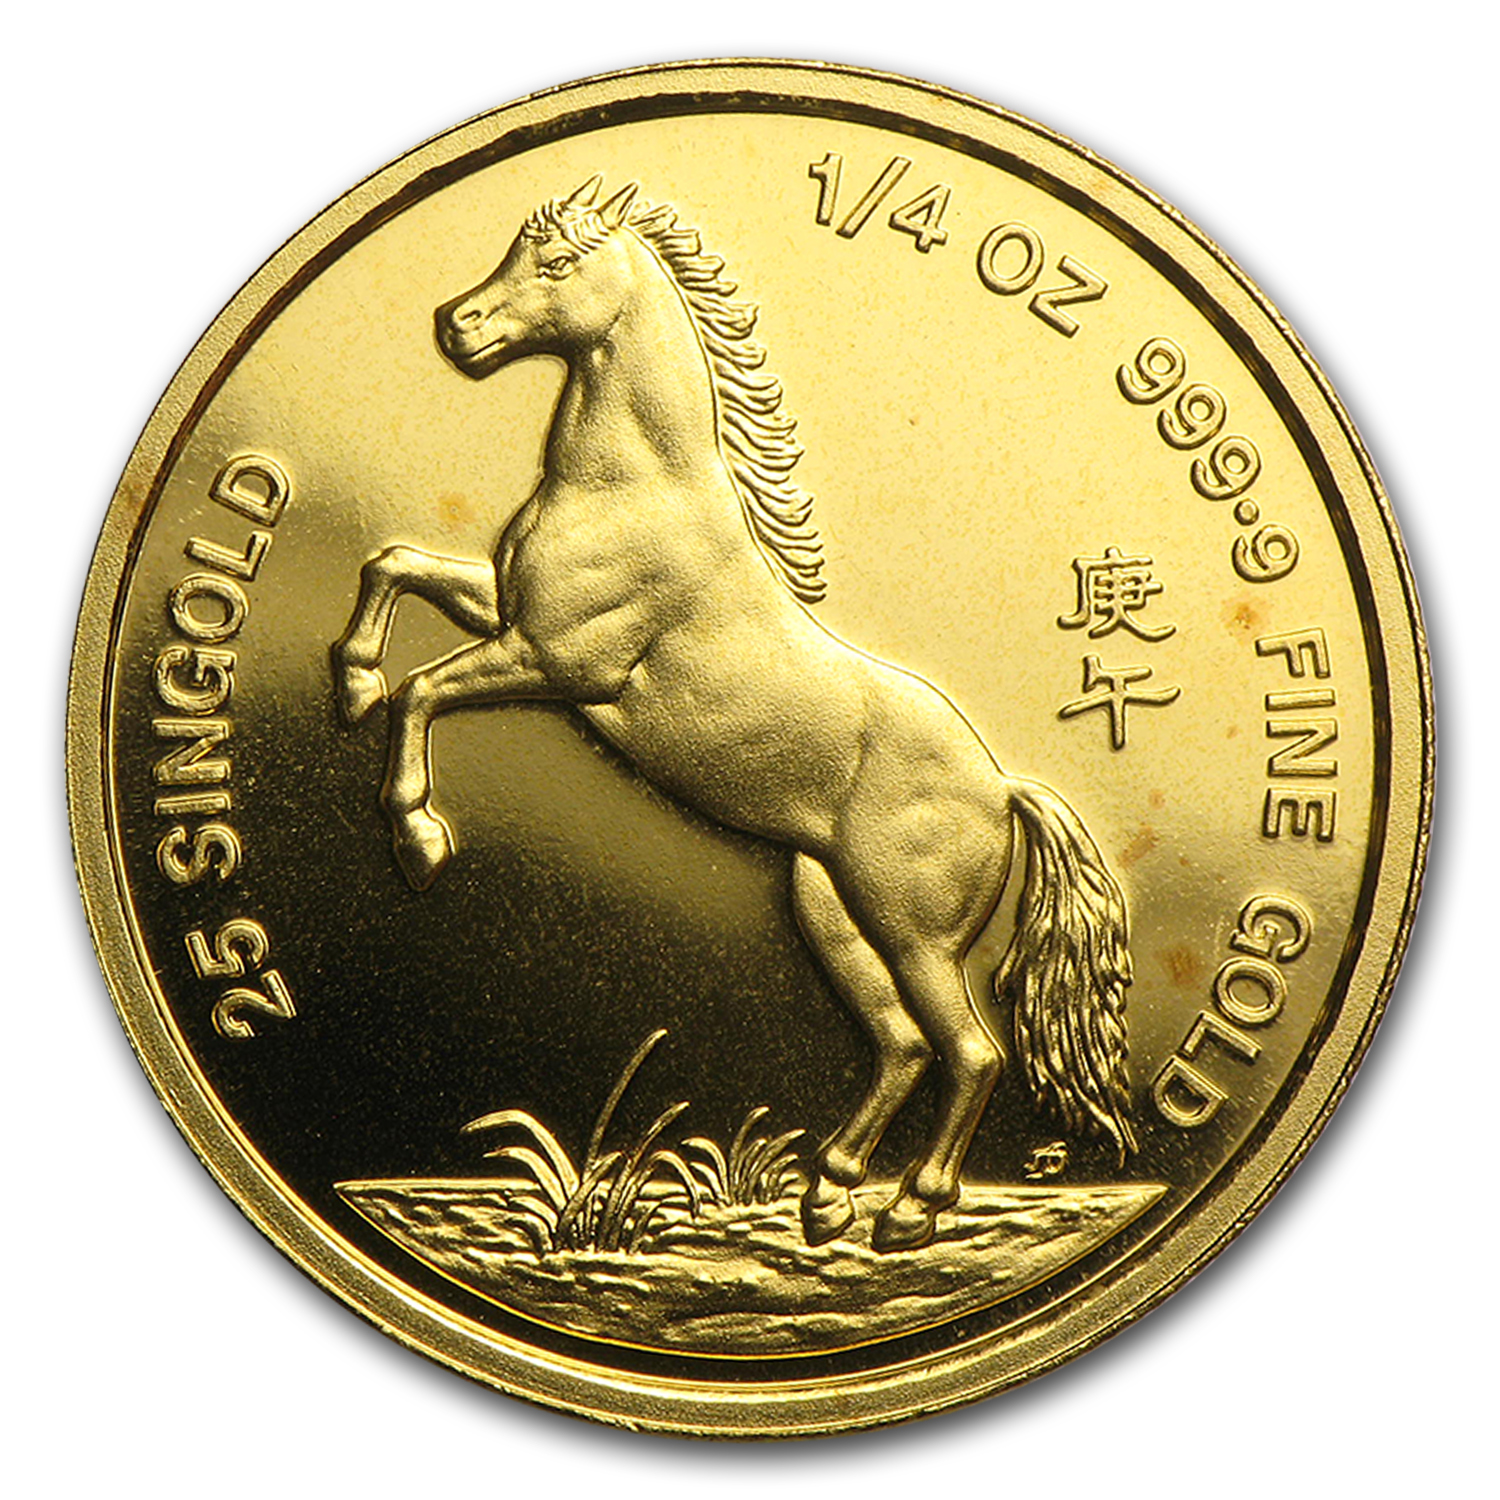 1990 Singapore 1/4 oz Gold Year of the Horse Coin